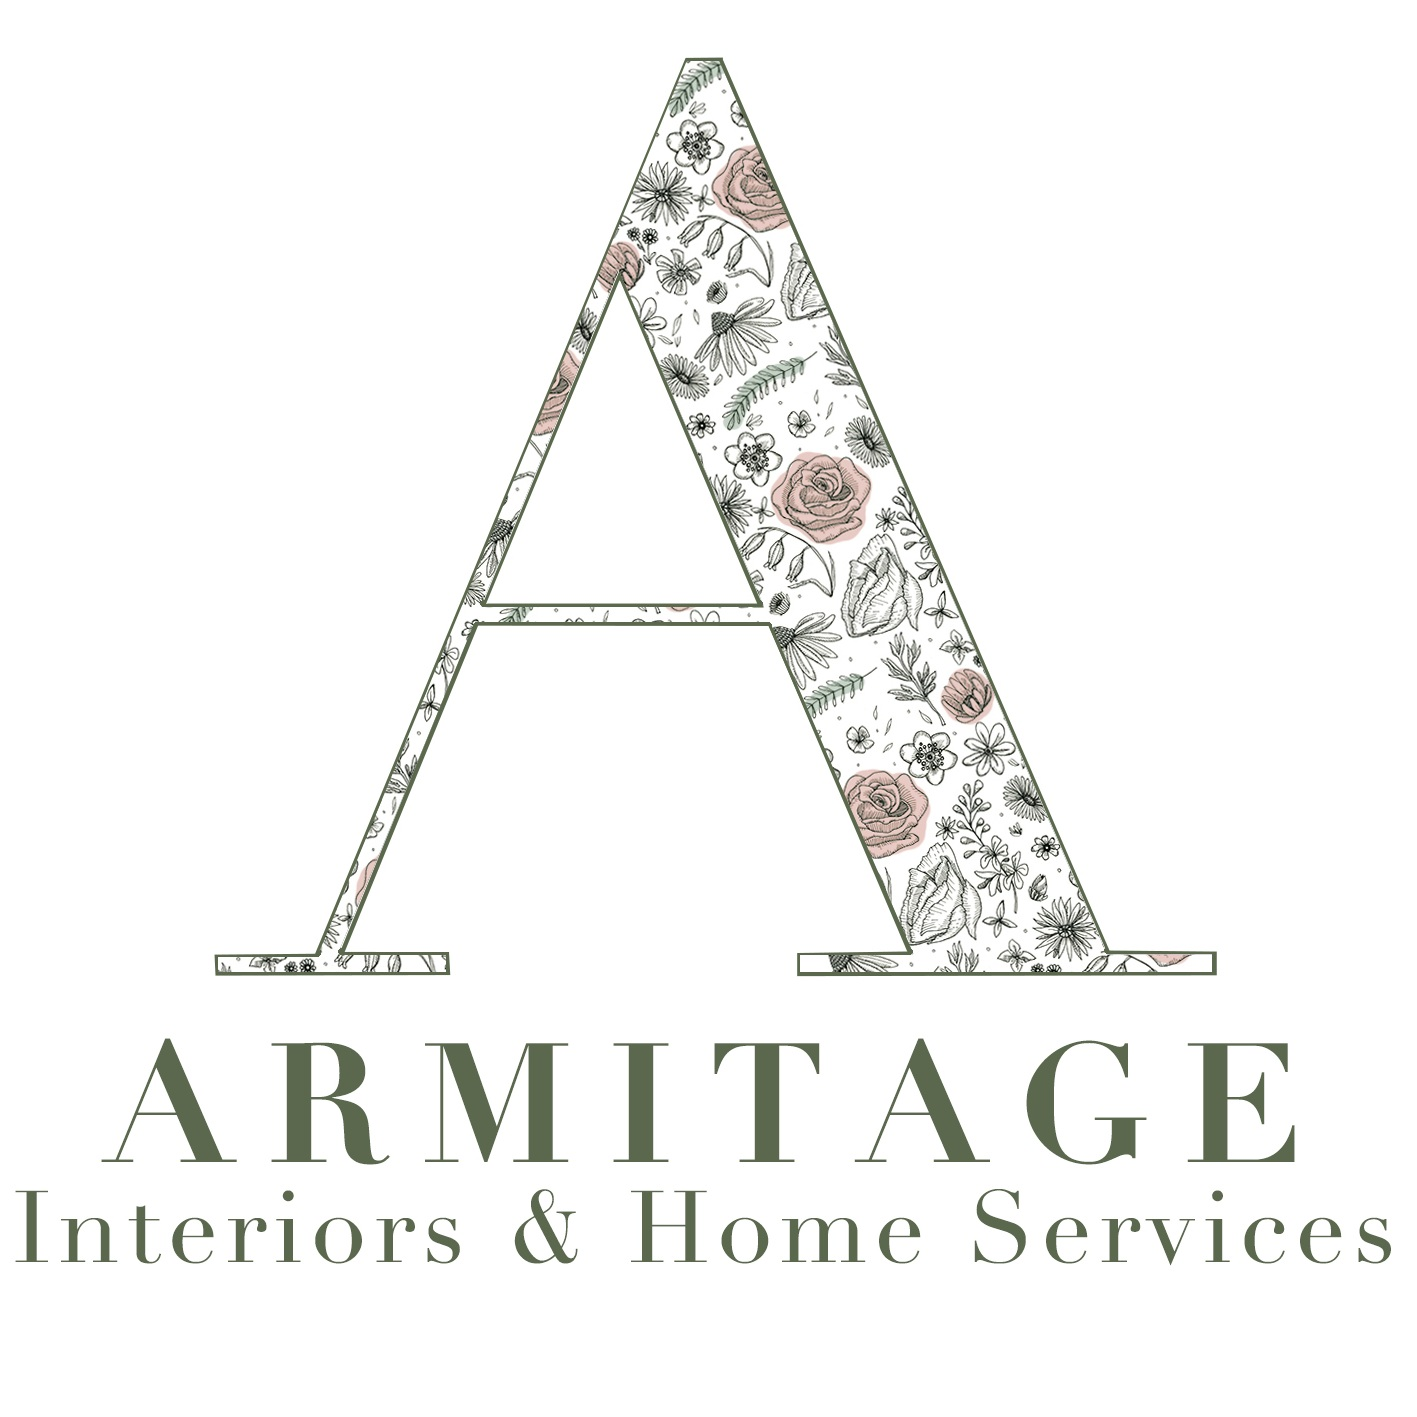 Armitage Interiors & Home Services